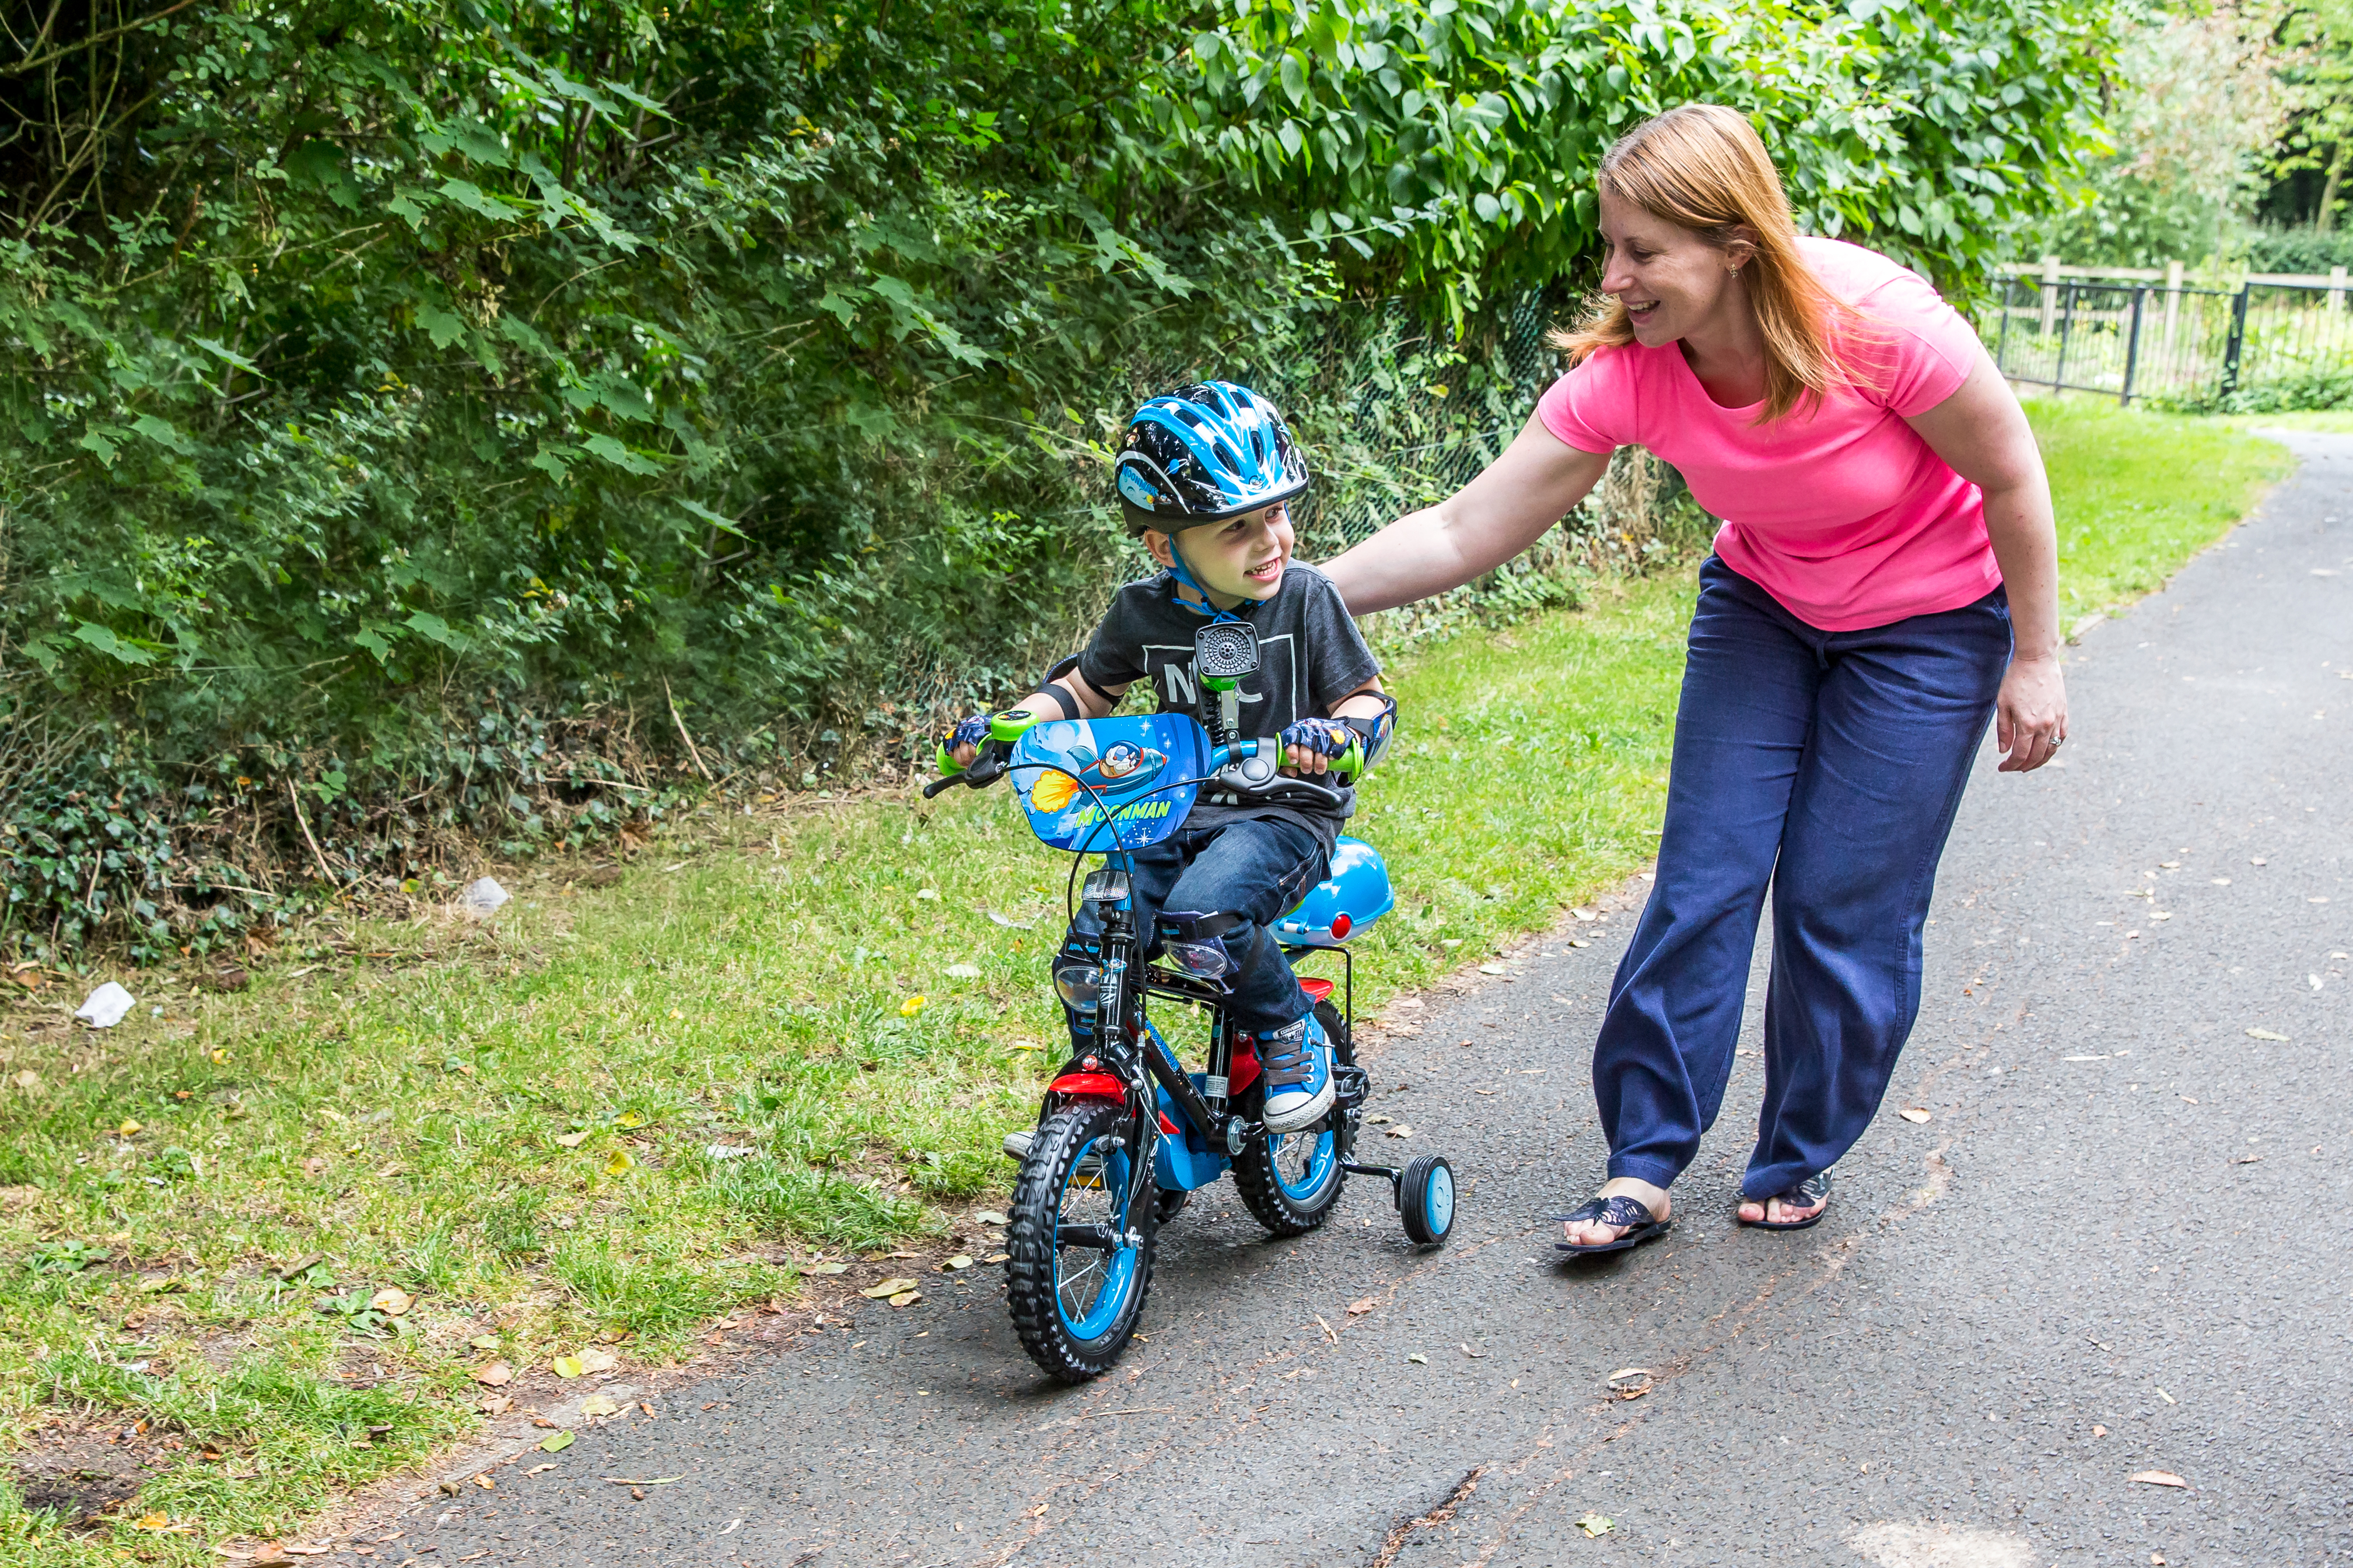 riding with stabilisers